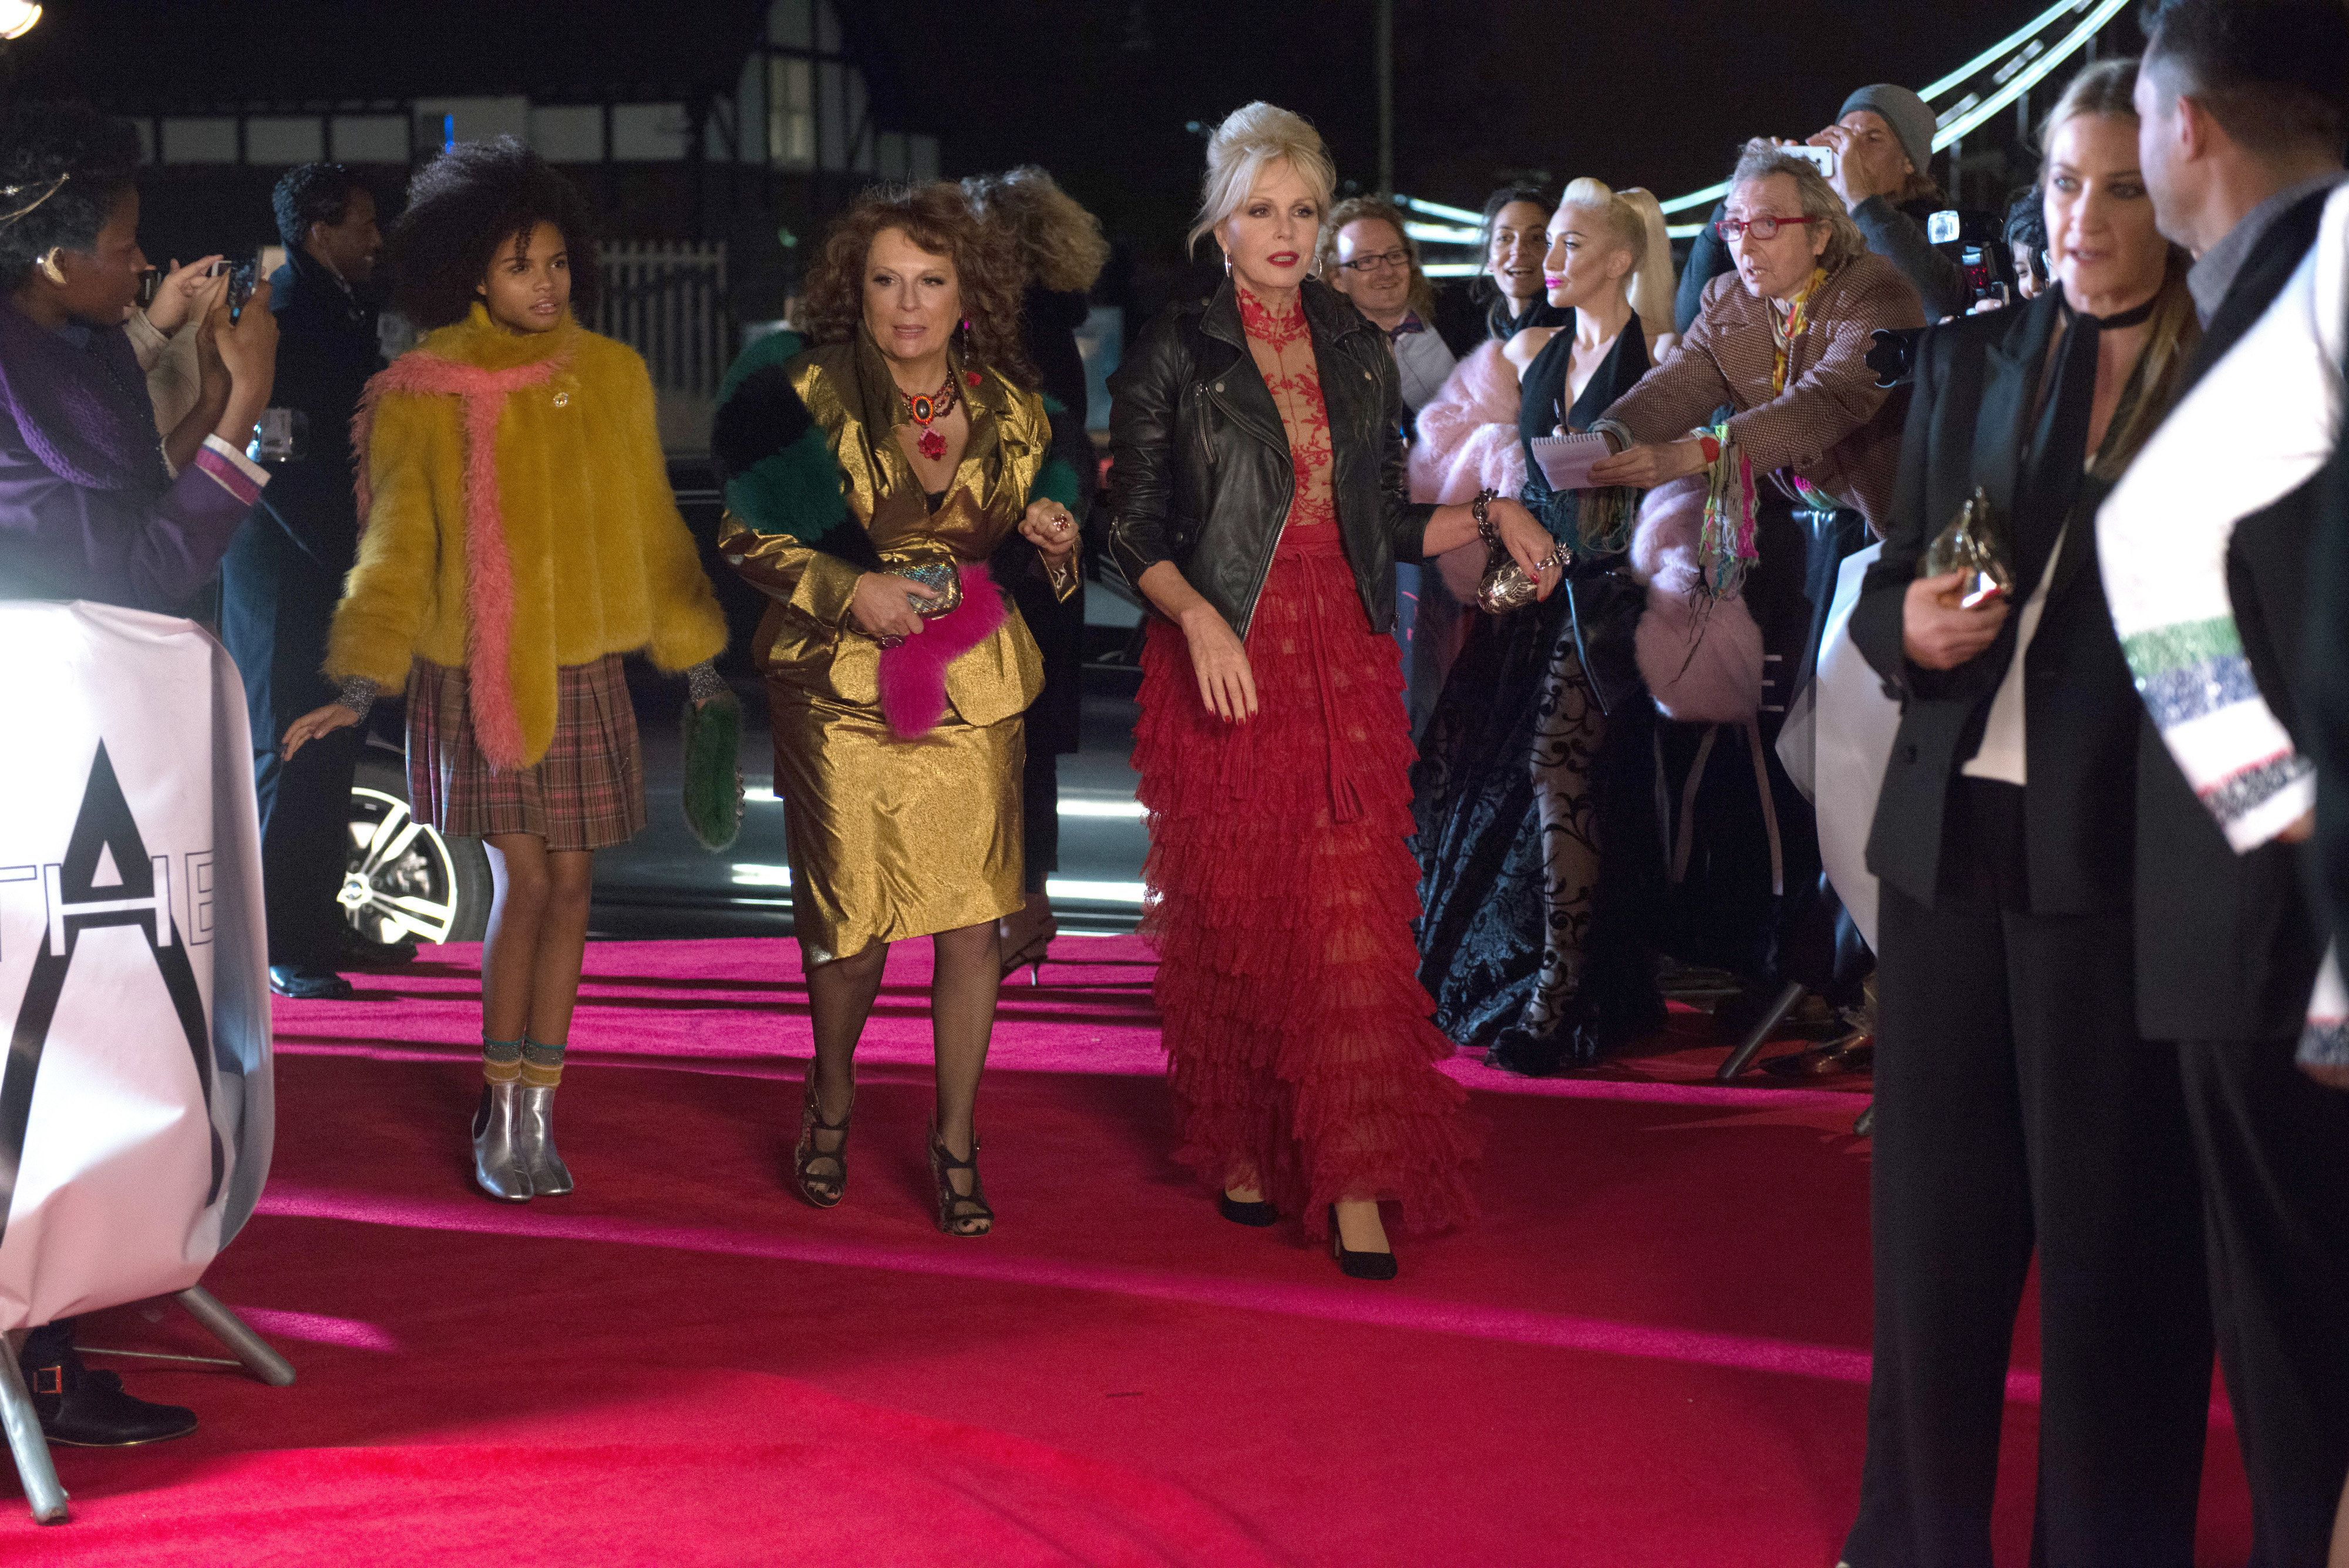 "(From L-R): Indeyarna Donaldson Holness as ""Lola,"" Jennifer Saunders as ""Edina"" and Joanna Lumley as ""Patsy"" in the film ABSOLUTELY FABULOUS: THE MOVIE. Photo by David Appleby. © 2016 Twentieth Century Fox Film Corporation All Rights Reserved"